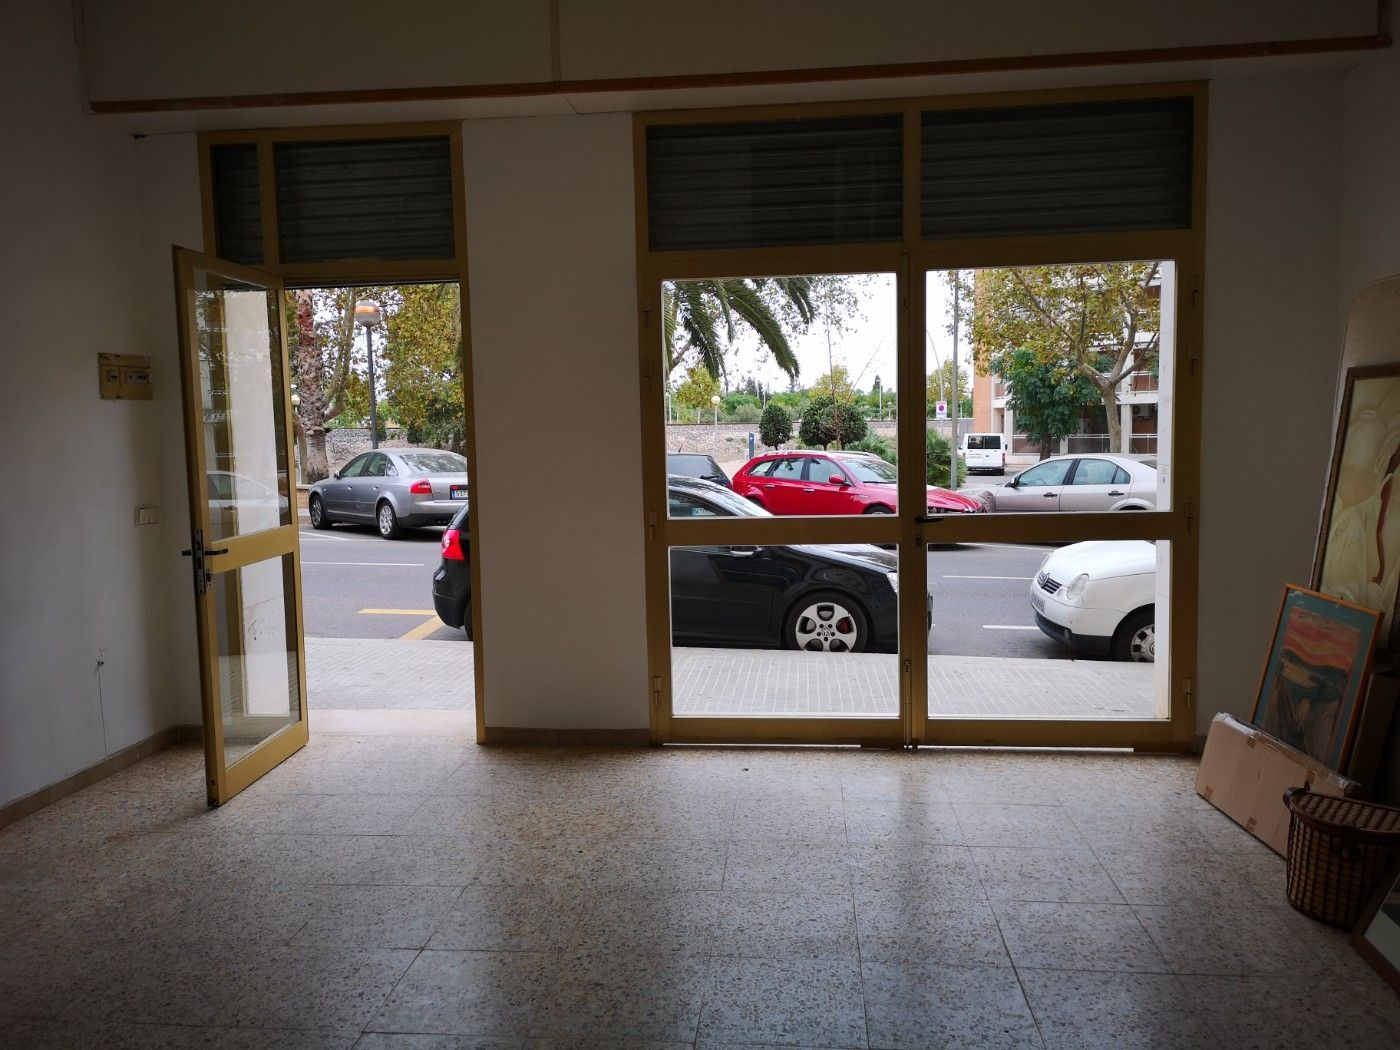 Alquiler Local Comercial en Carrer cami moli d´avall, 7. Alquilo local negocio en cambril